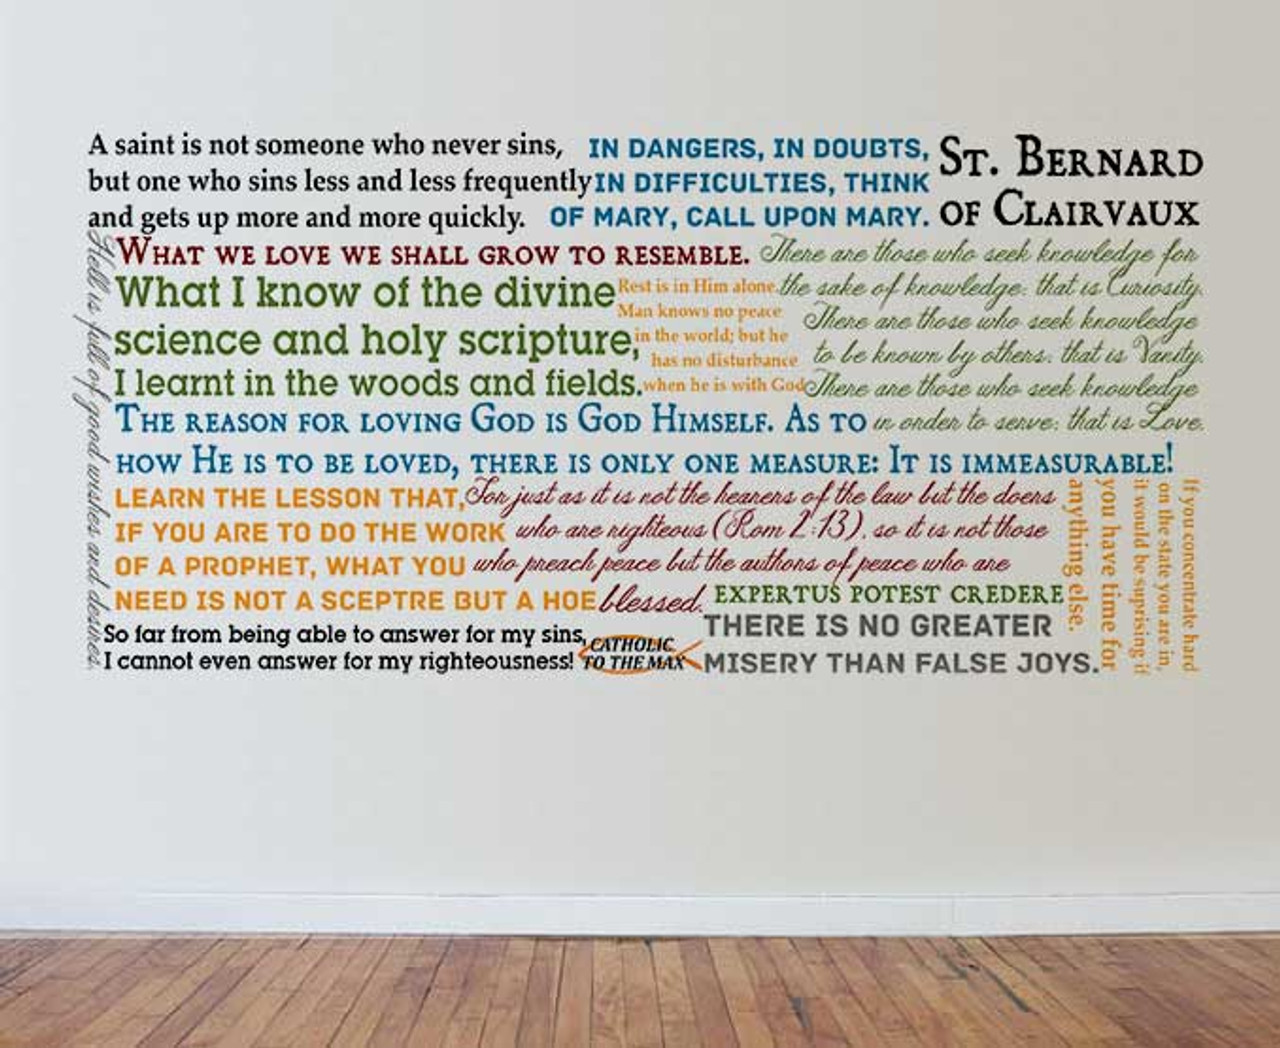 St Bernard Of Clairvaux Quotes: Saint Bernard Of Clairvaux Quote Wall Decal